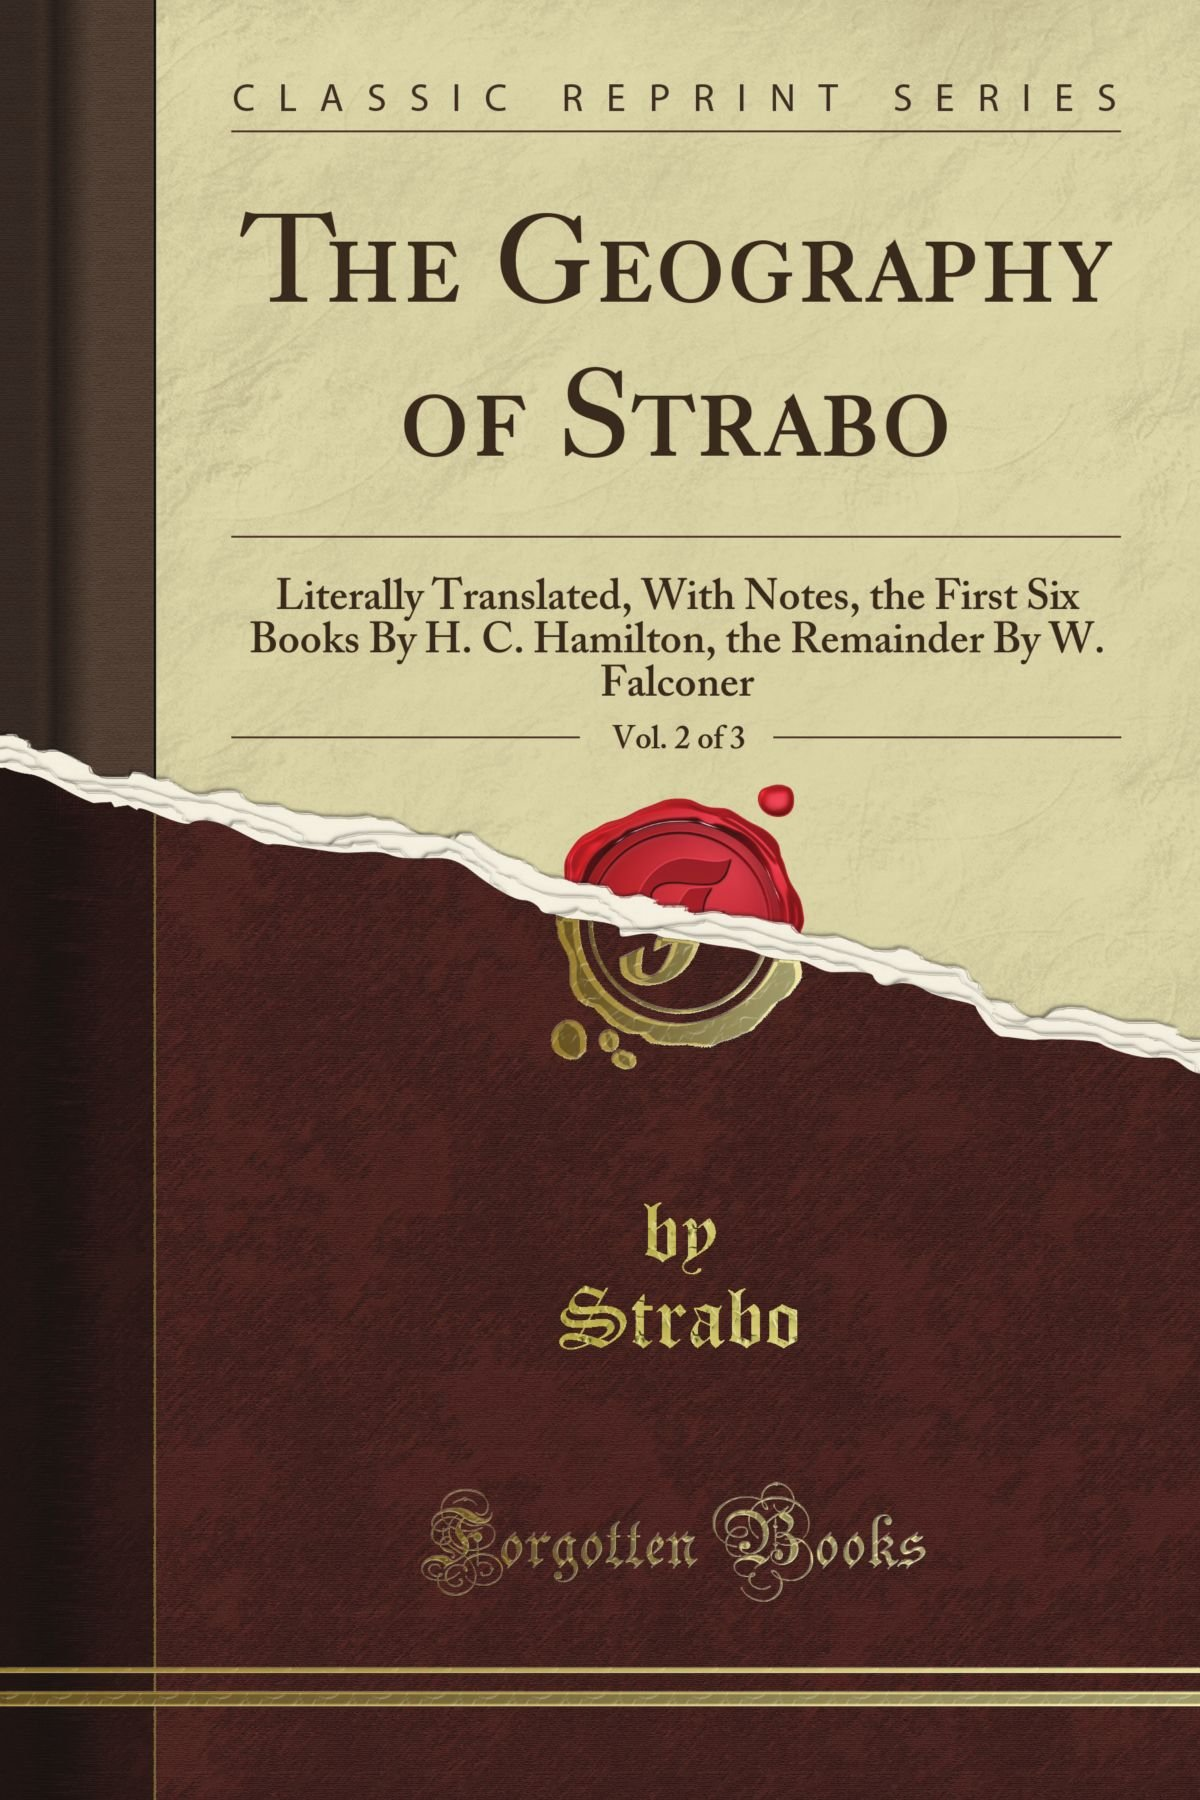 The Geography of Strabo: Literally Translated, With Notes ...